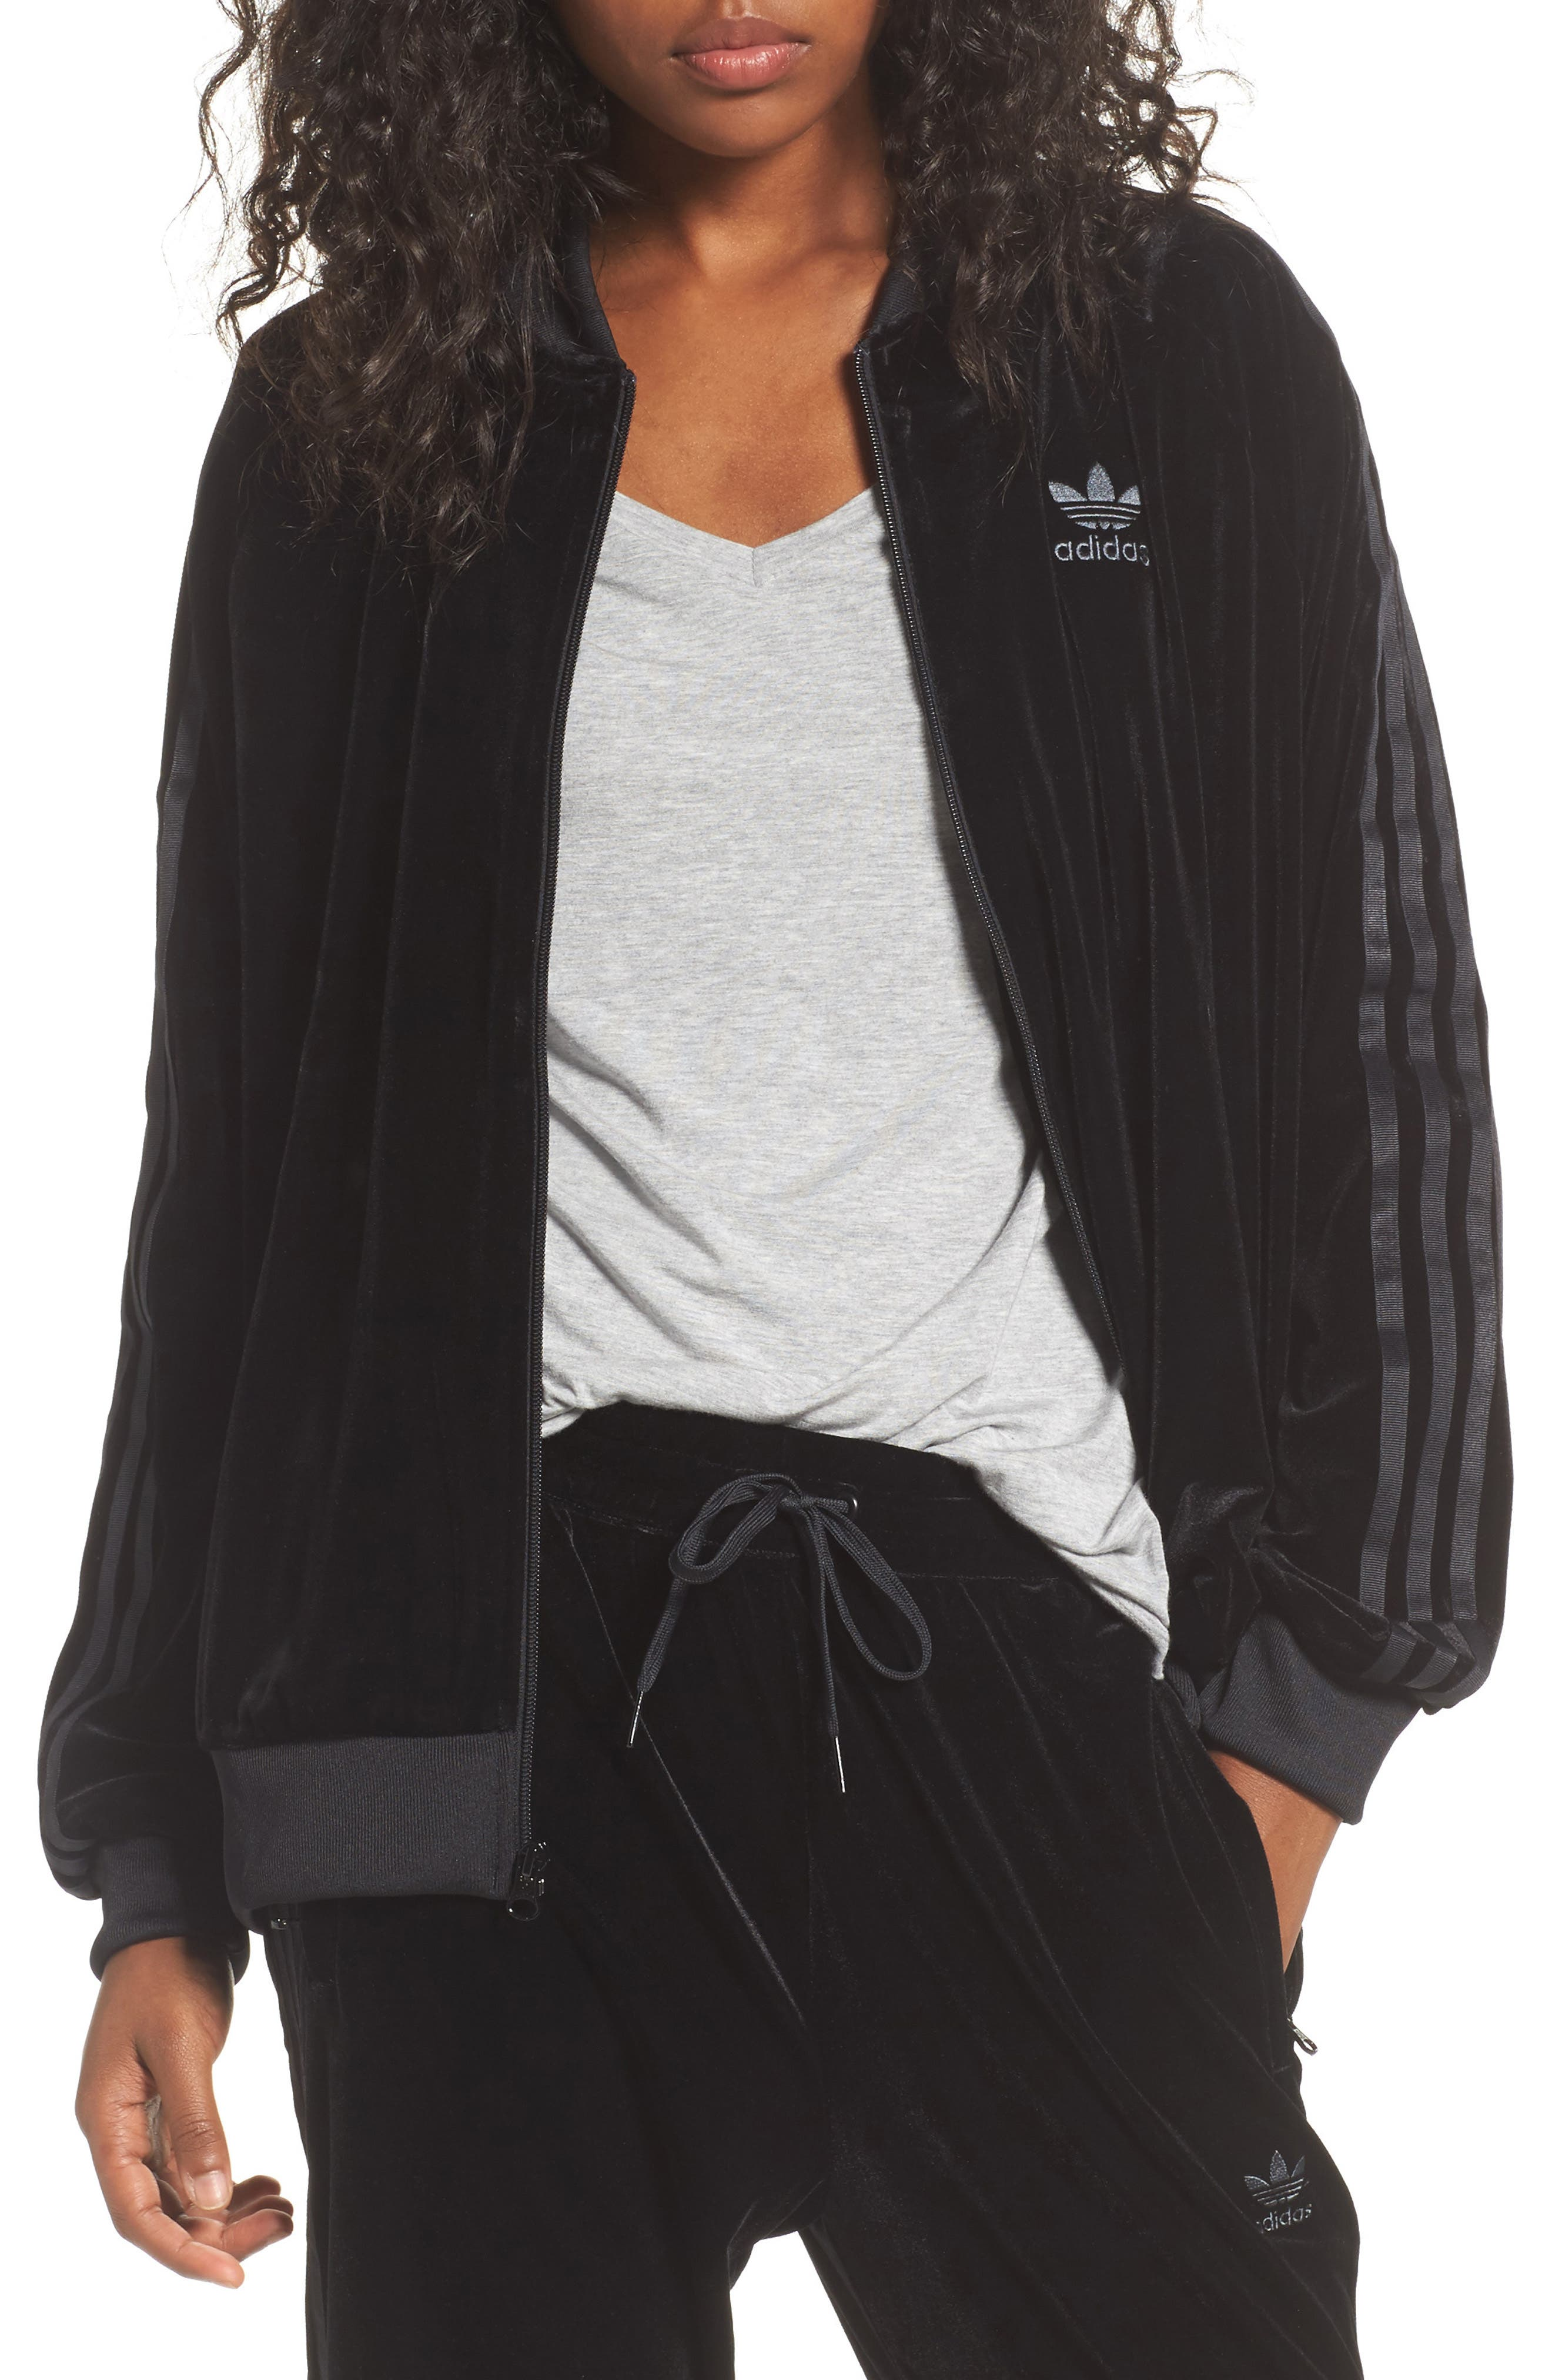 adidas originals Velvet Zip Sweatshirt